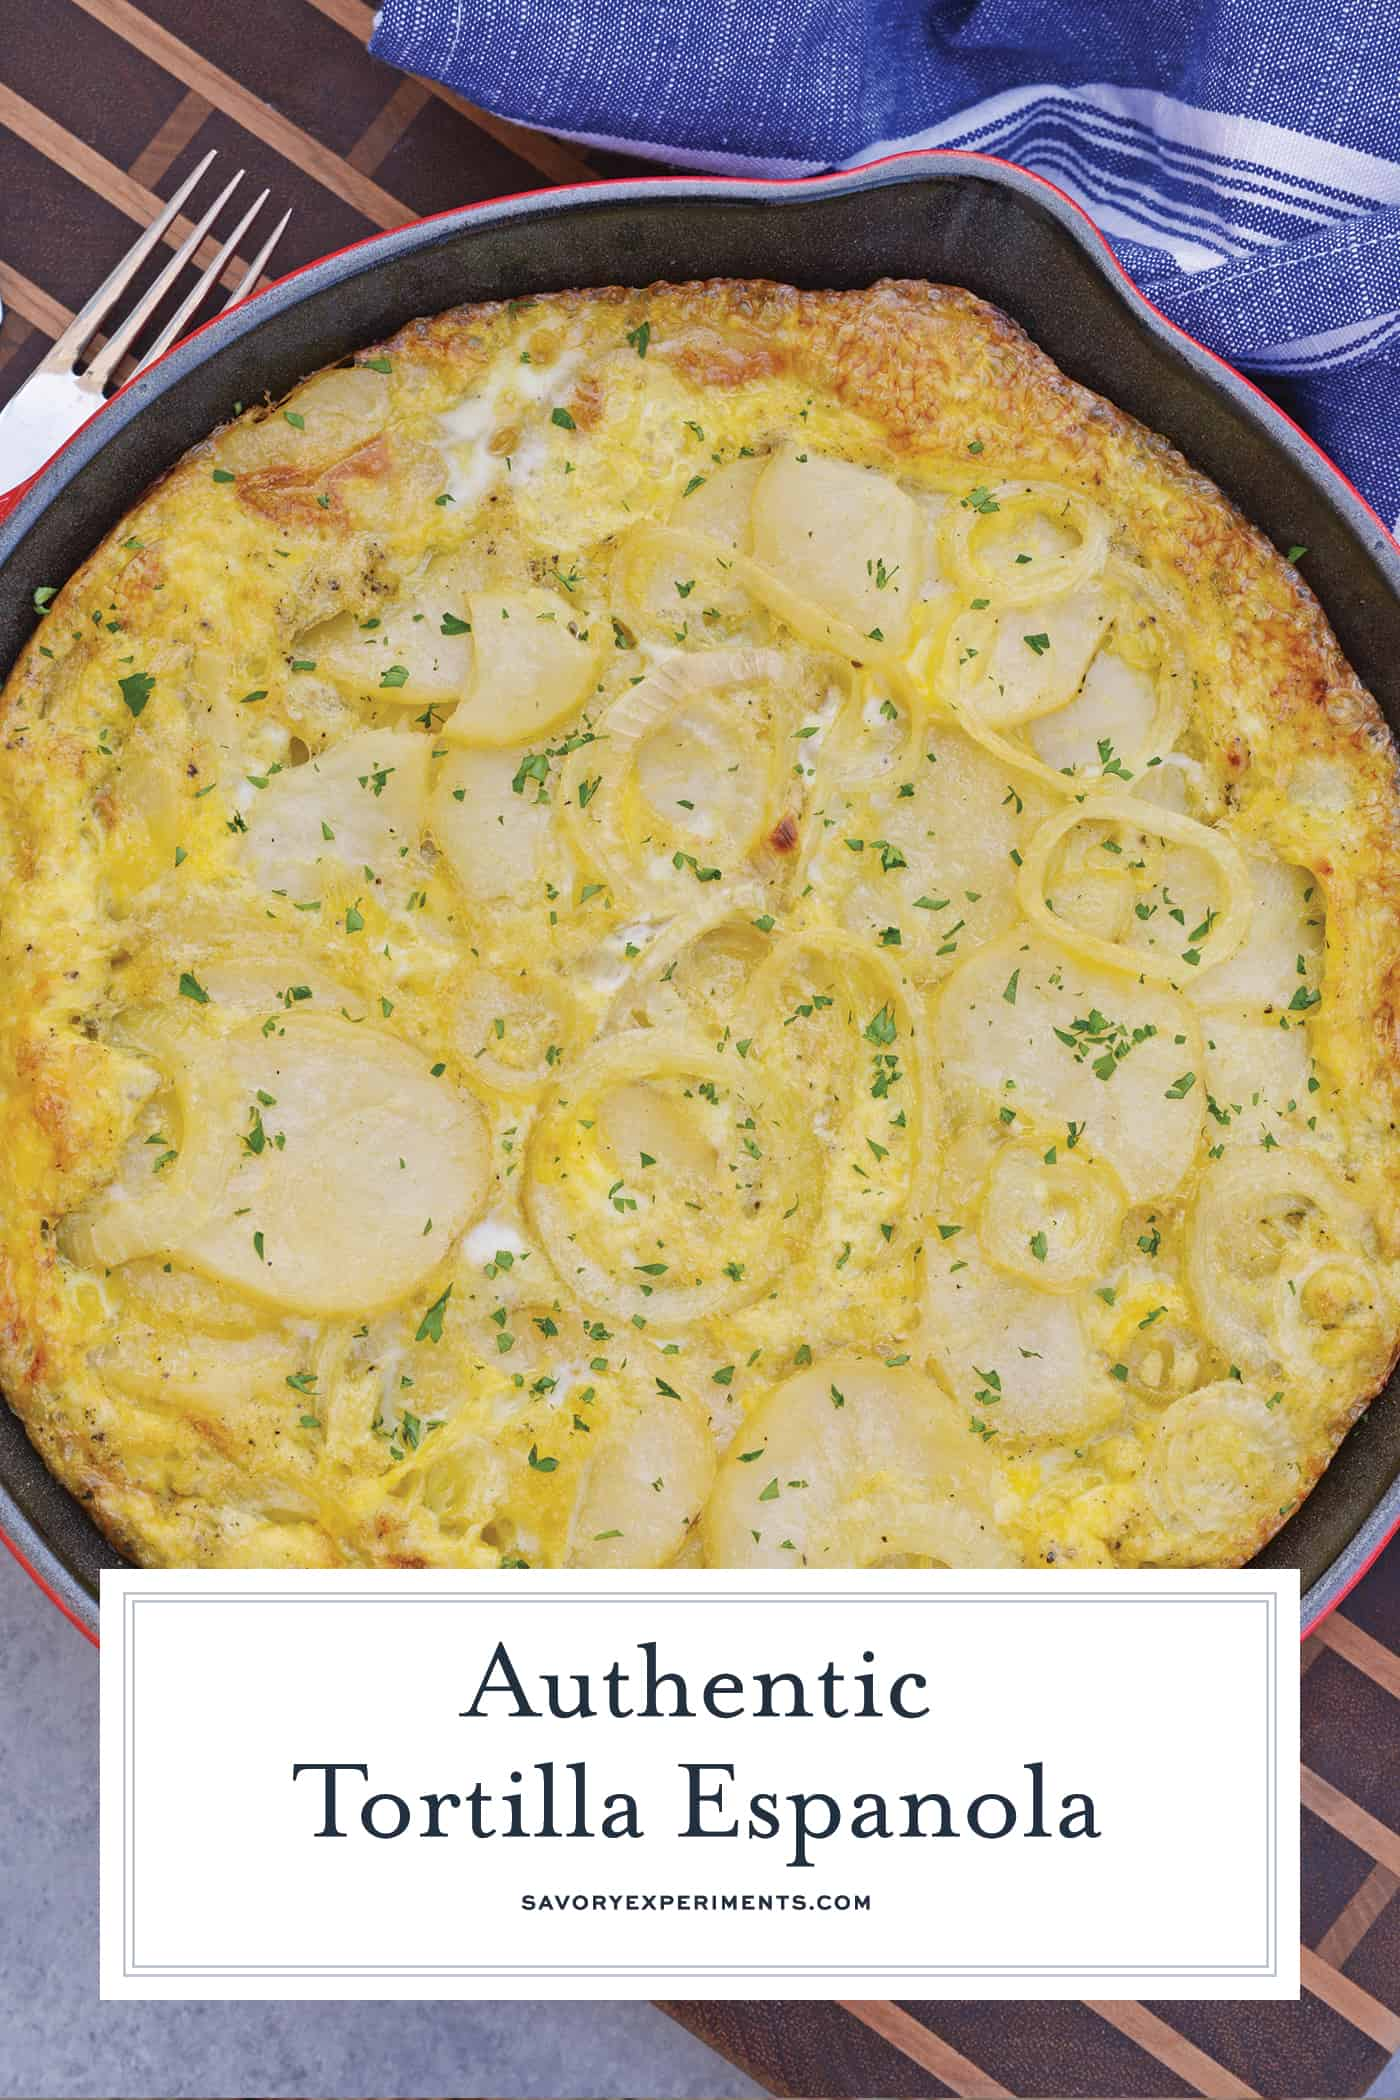 Tortilla Espanola, also known as Spanish Tortilla or Potato Tortilla, is a Spanish egg dish made with fried potatoes, onions and cheese.#tortillaespanola #spanishtortilla #potatotortilla www.savoryexperiments.com